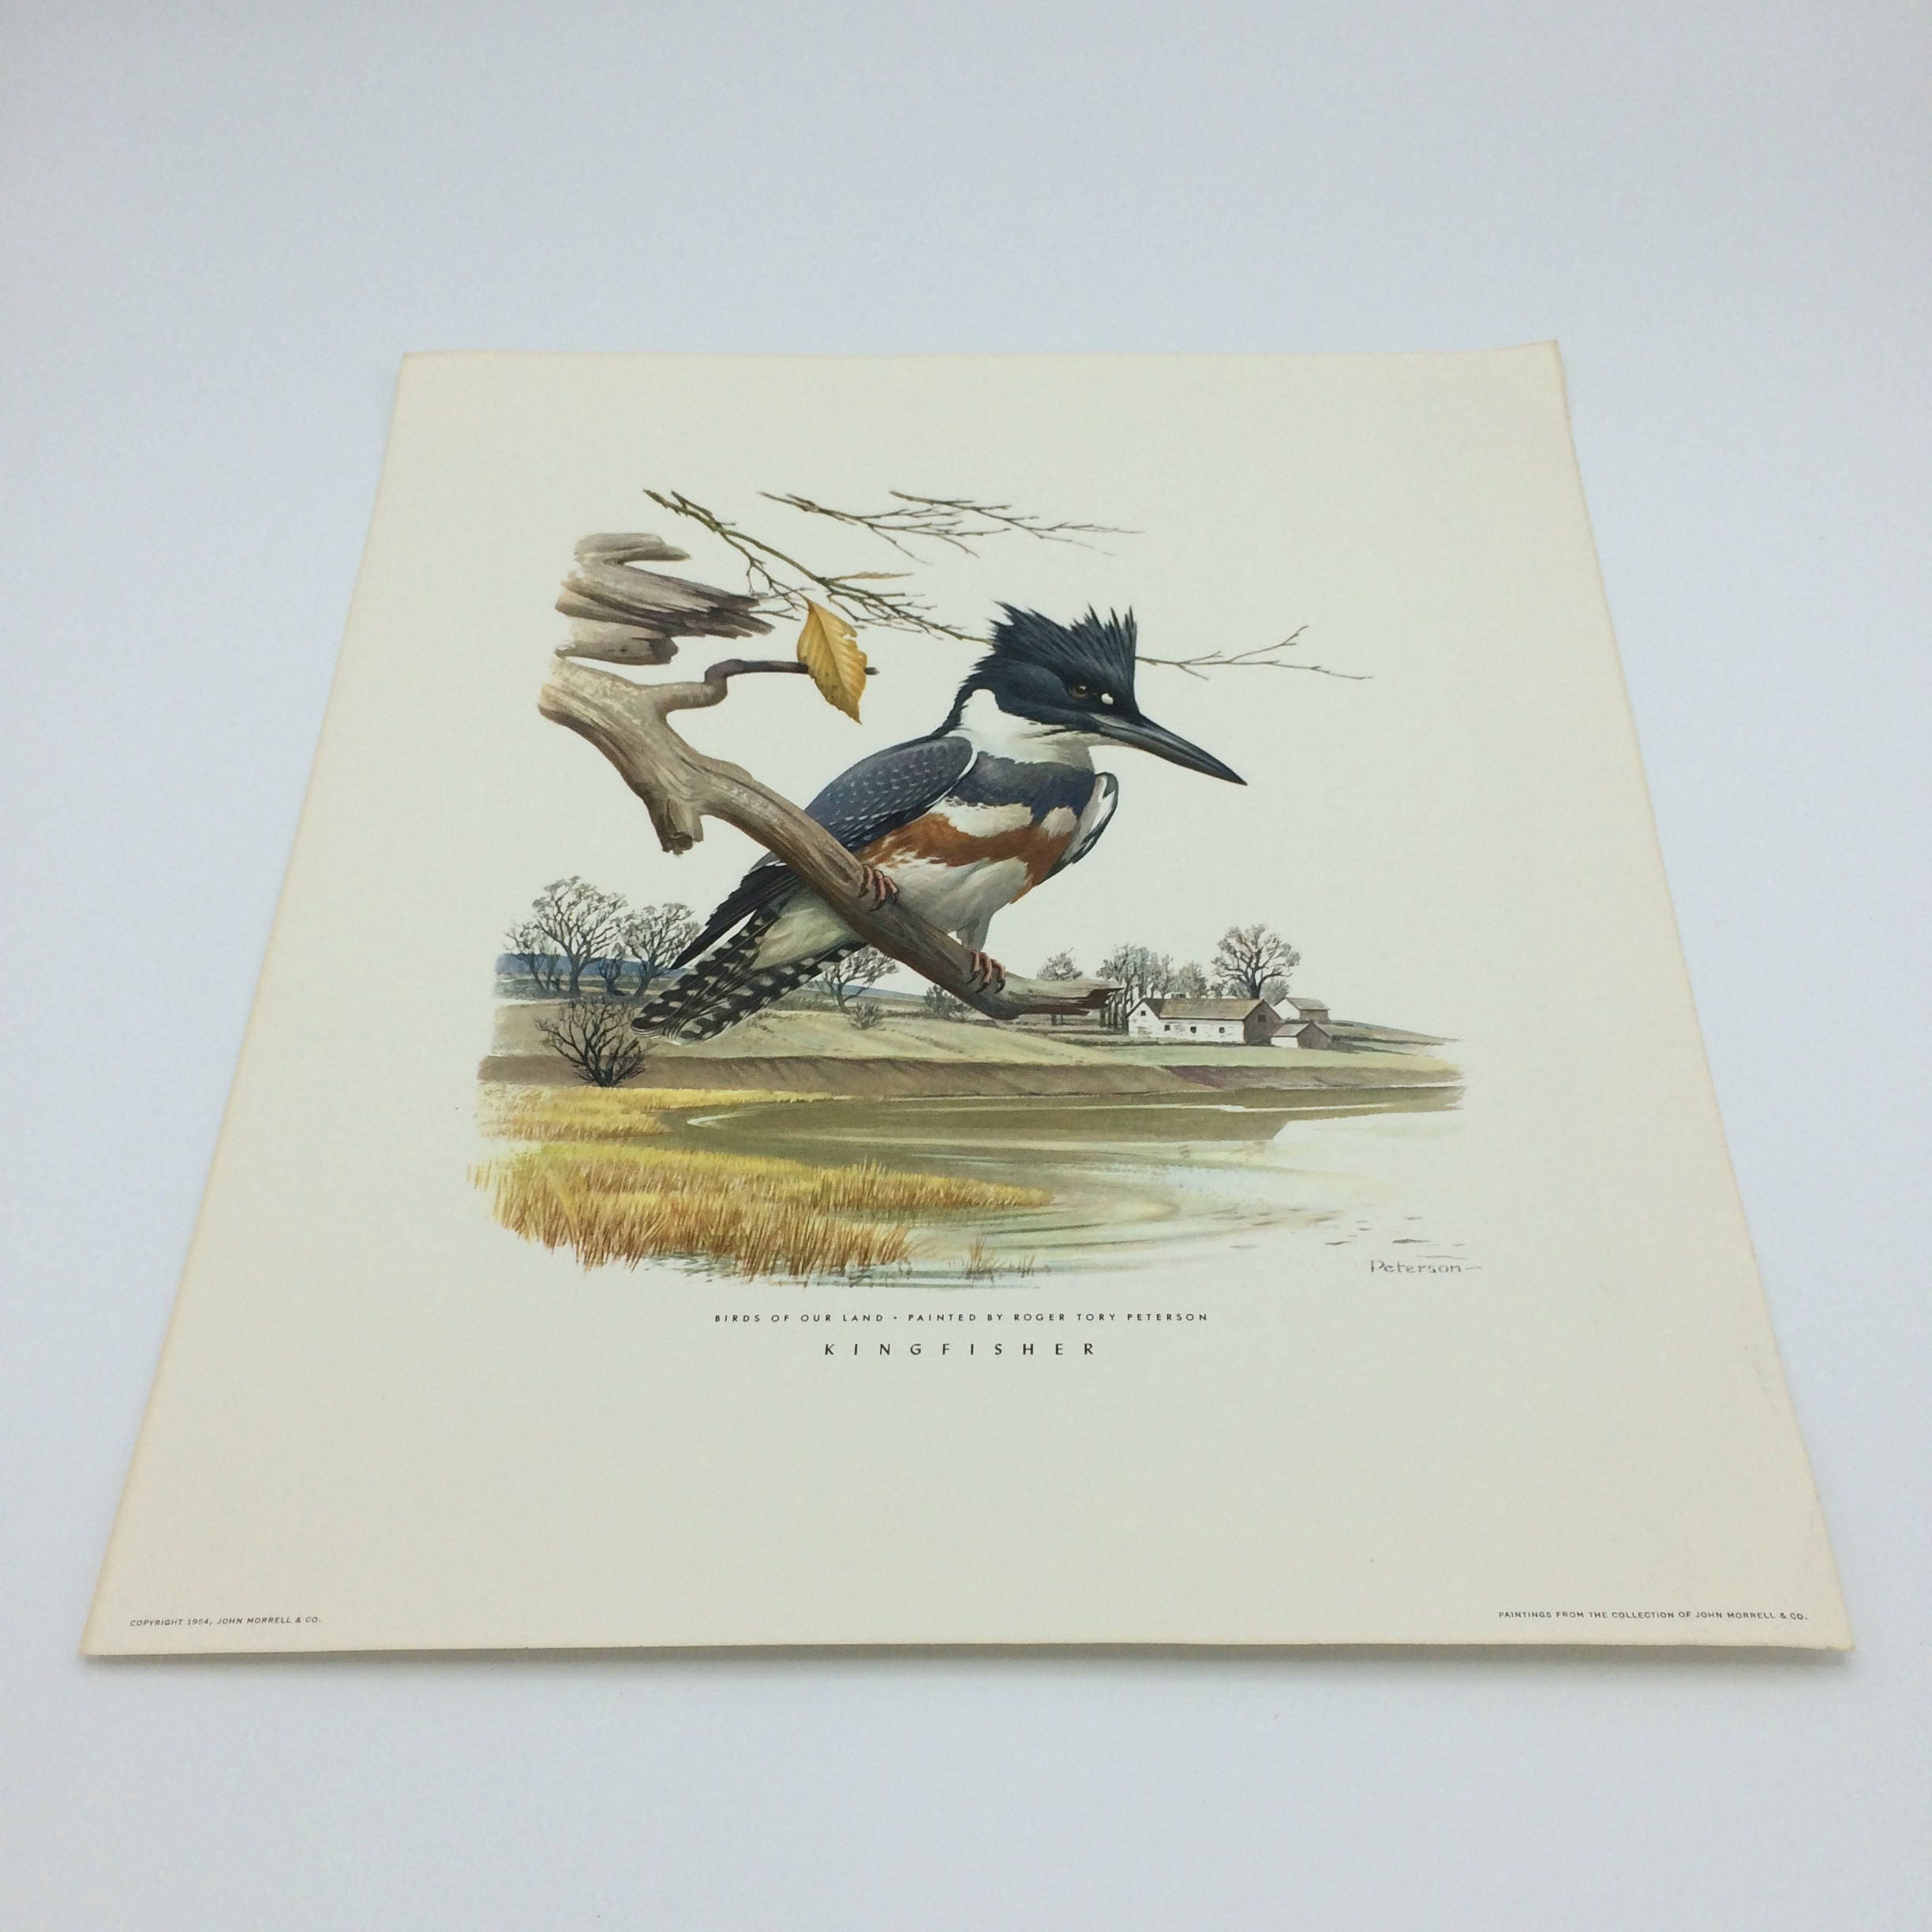 1954 Roger Tory Peterson Prints/John Morrell & Co/Kingfisher